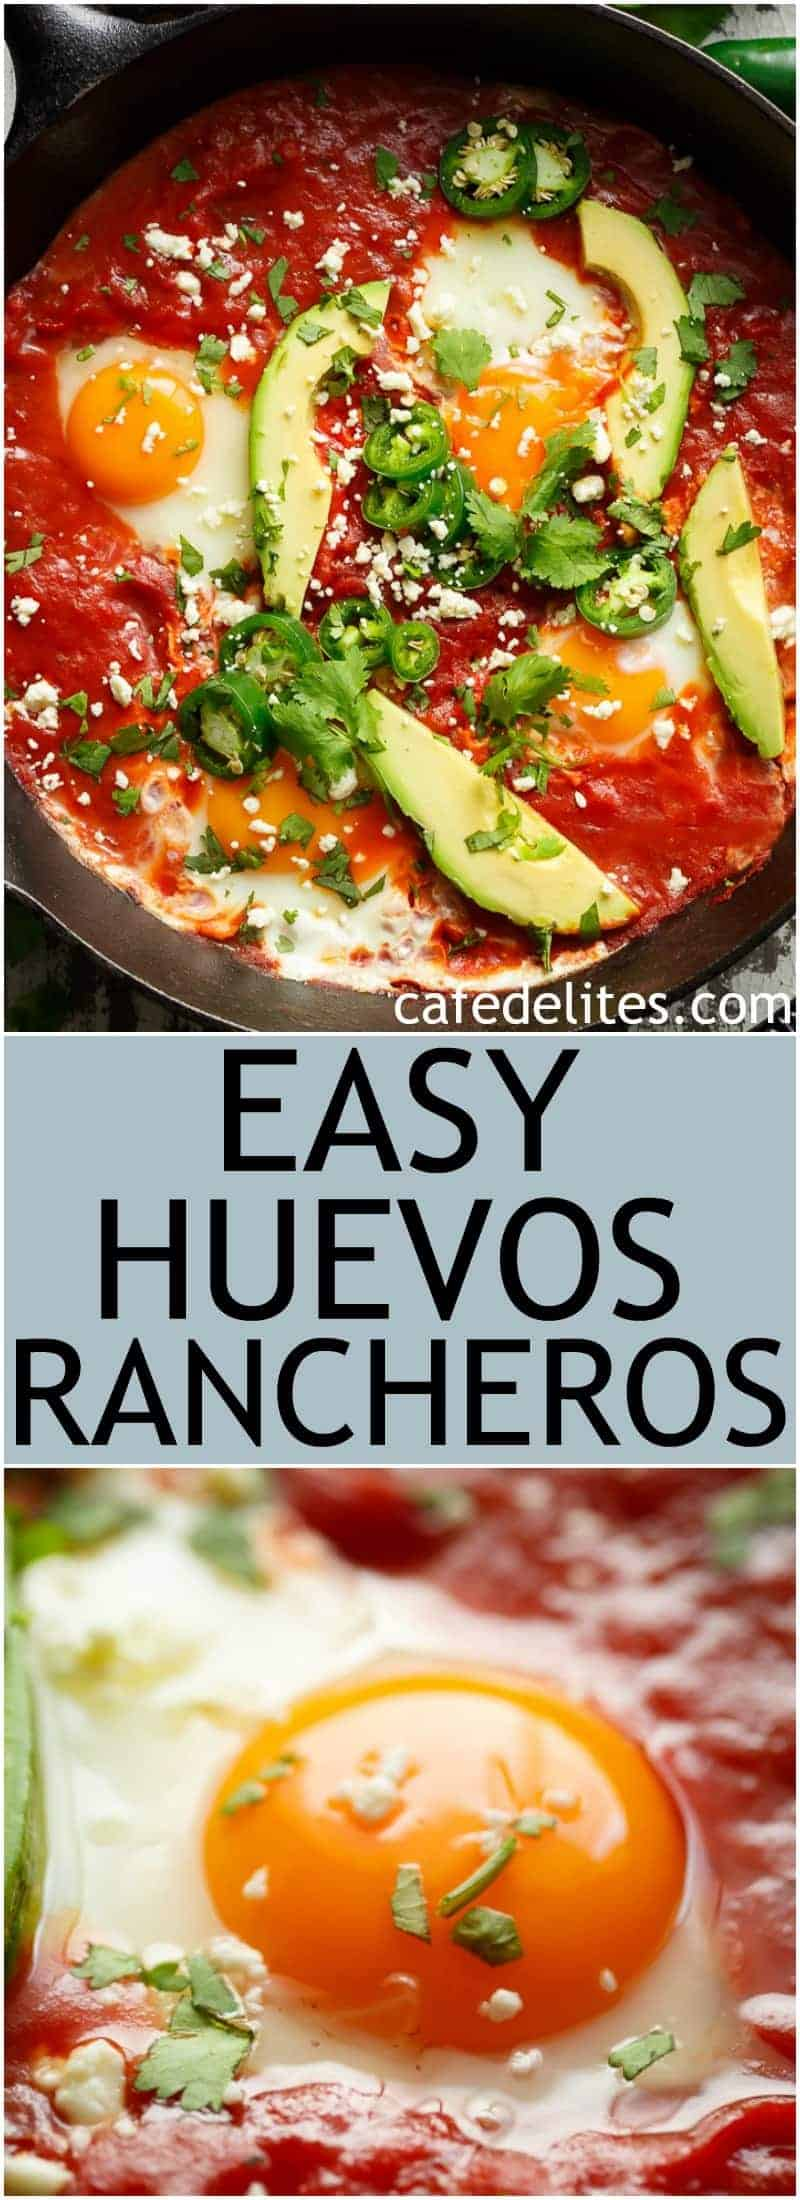 Easy Huevos Rancheros are done so fast, with an added, non traditional secret-ingredient weapon that guarantees amazing flavours! | https://cafedelites.com